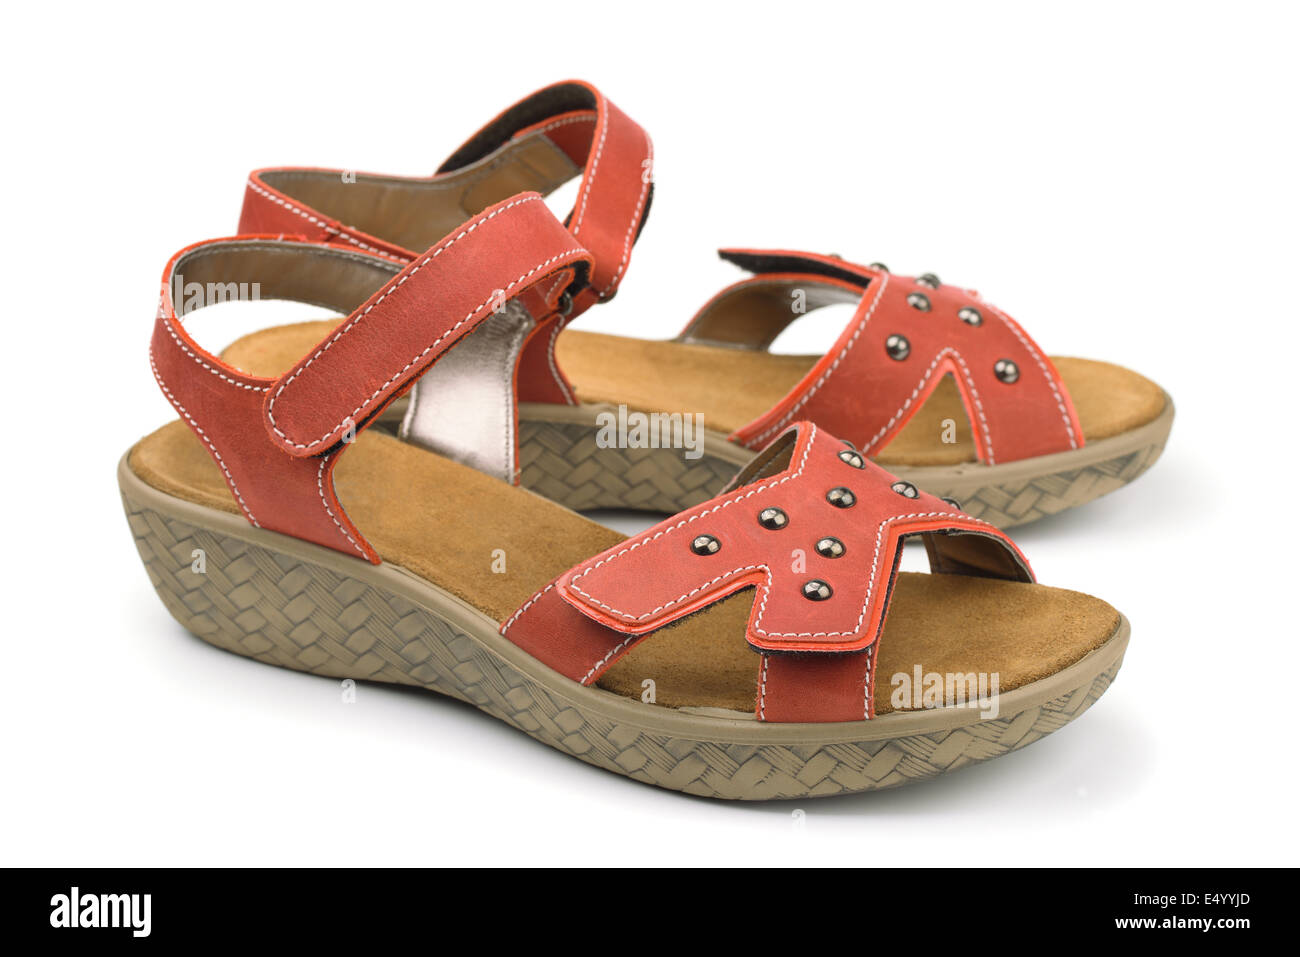 Red leather sandals isolated on white - Stock Image